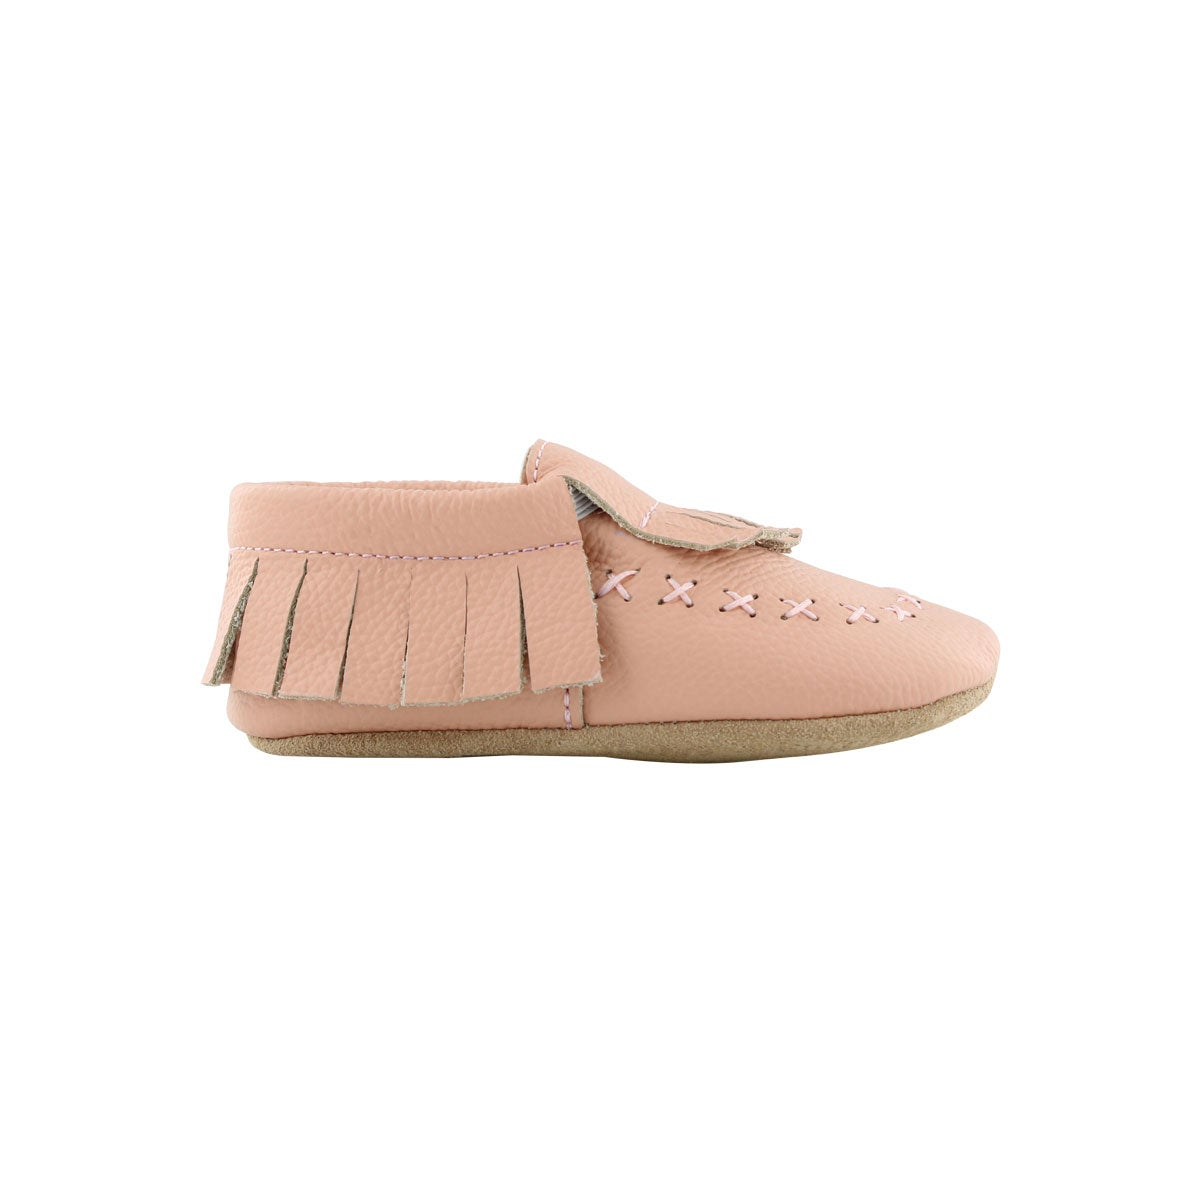 Infs-g Smoccey pnk slipper bootie